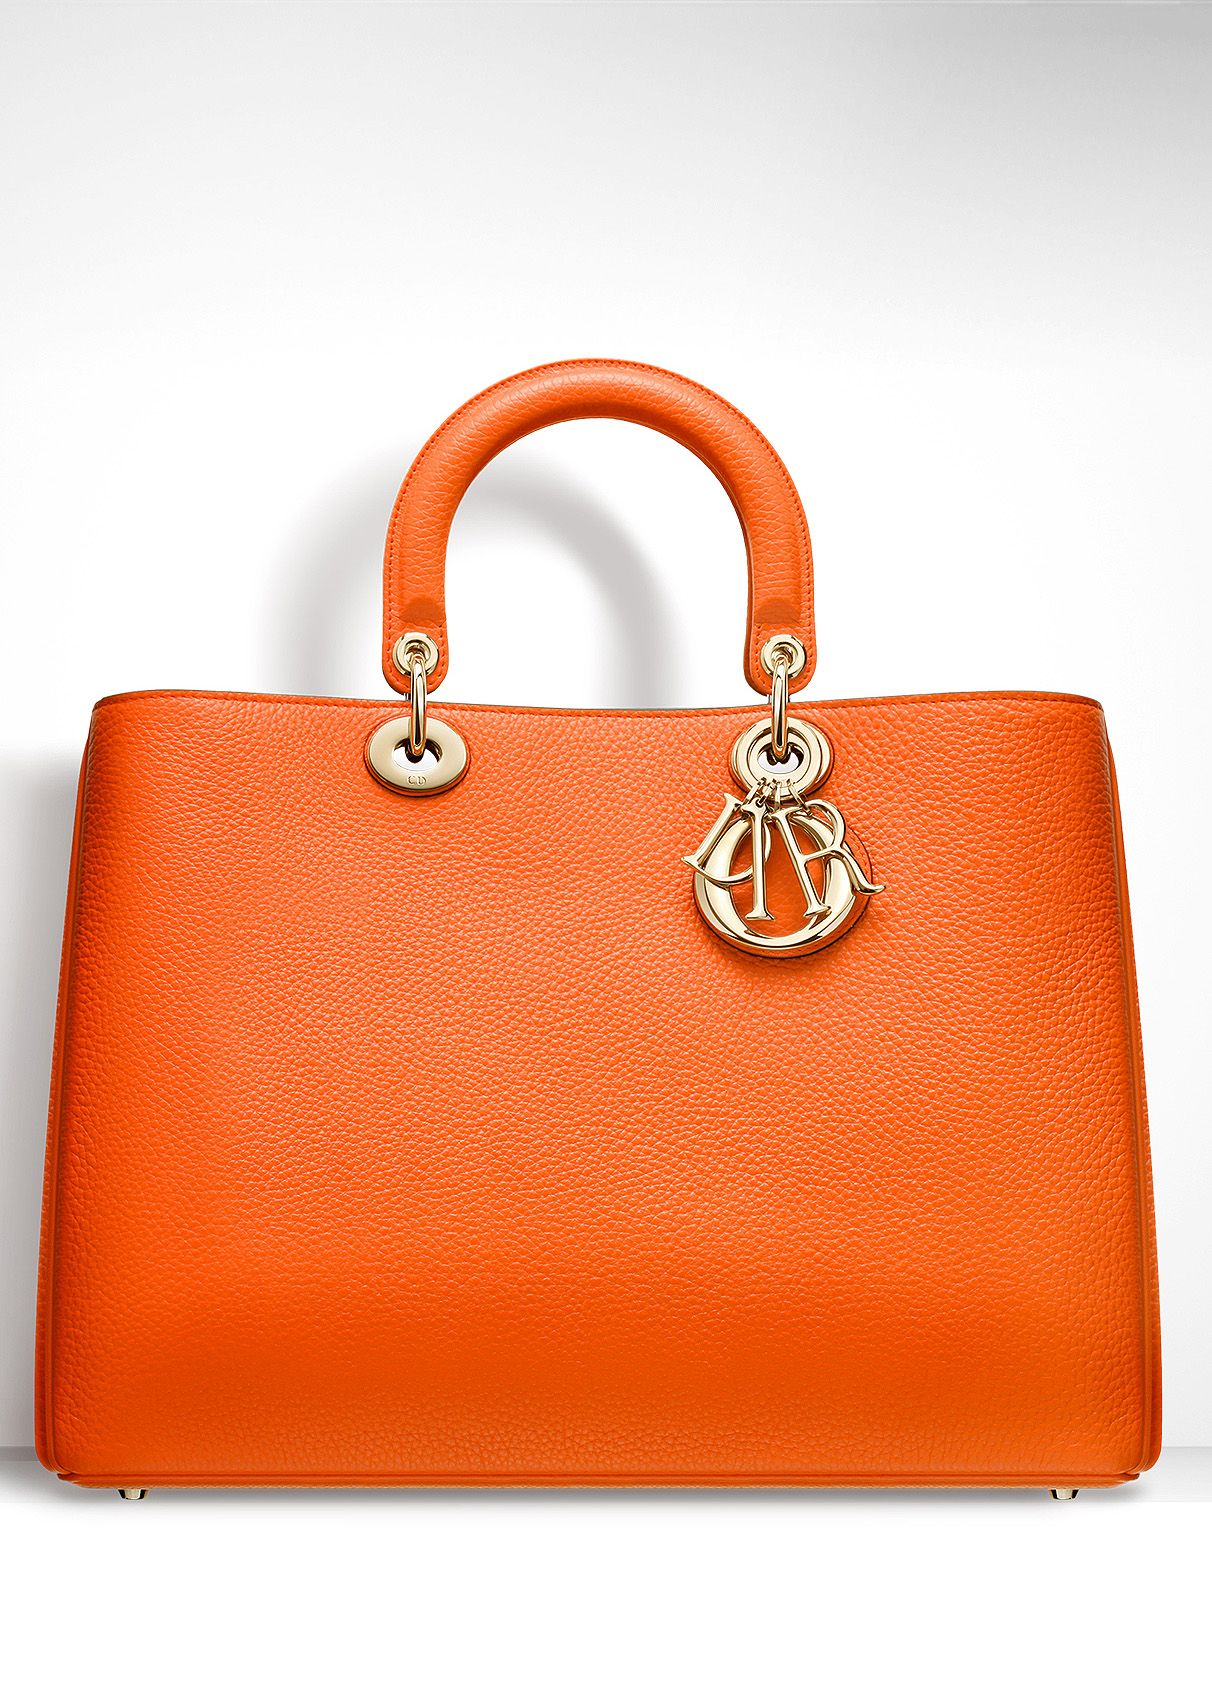 Dior ~ LARGE  DIORISSIMO  BAG TANGERINE BULLCALF LEATHER   Orange ... dec0f4d764d